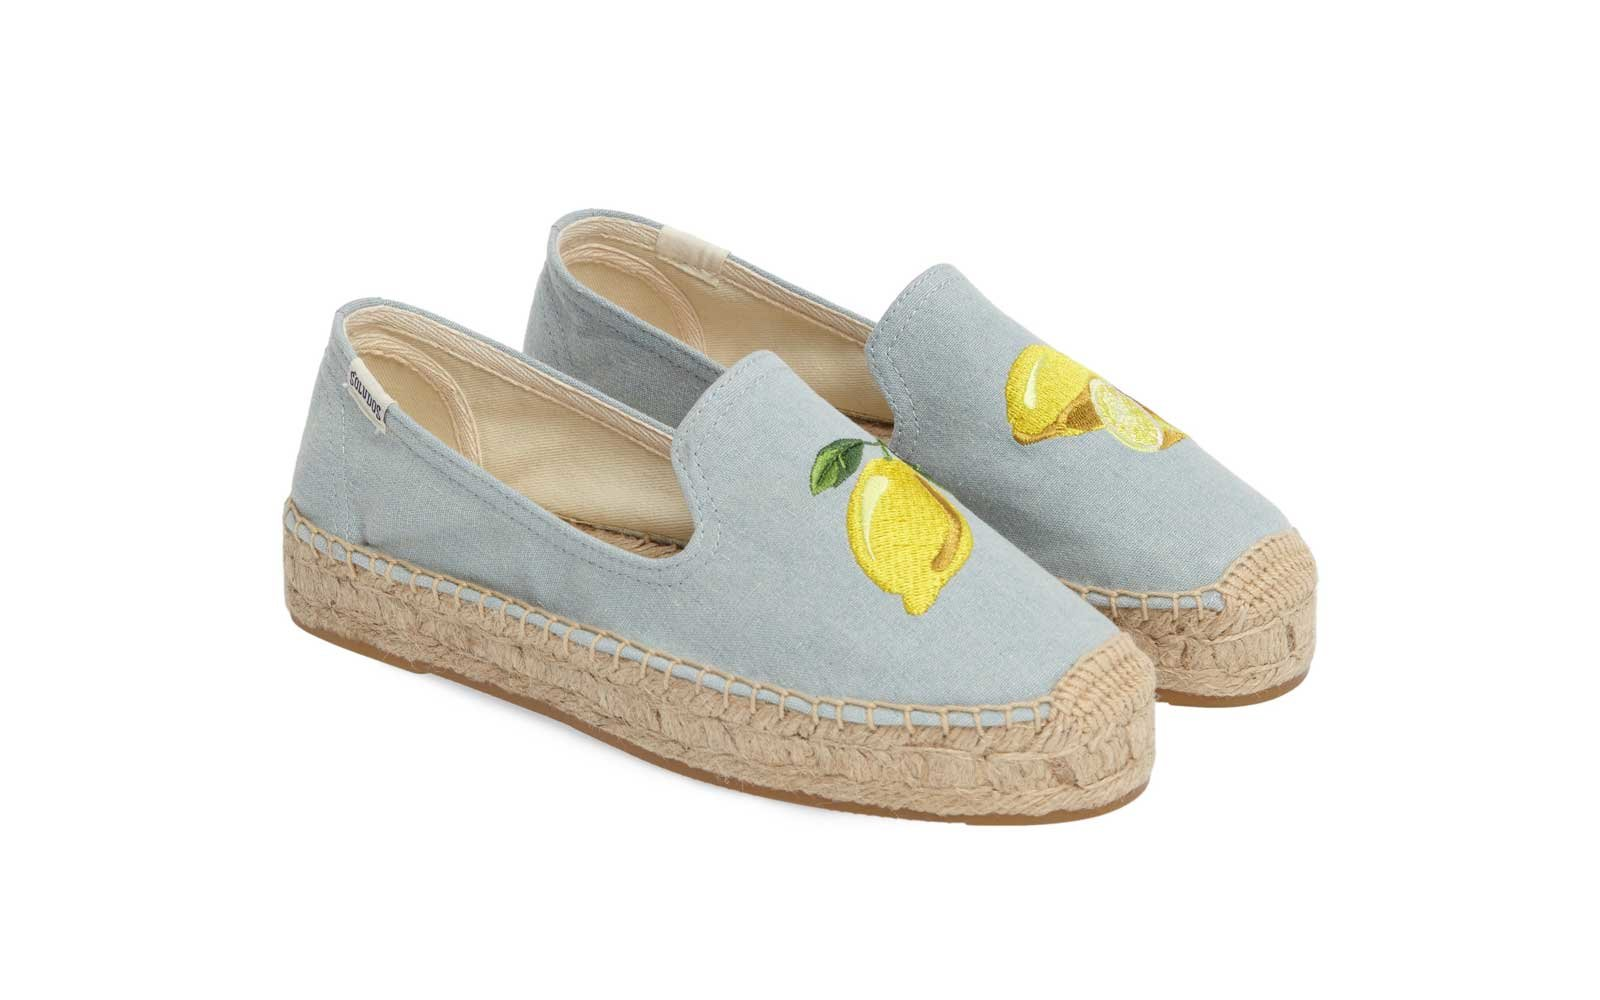 396156abd29 The Best Comfortable (and Cute) Flats for Travel